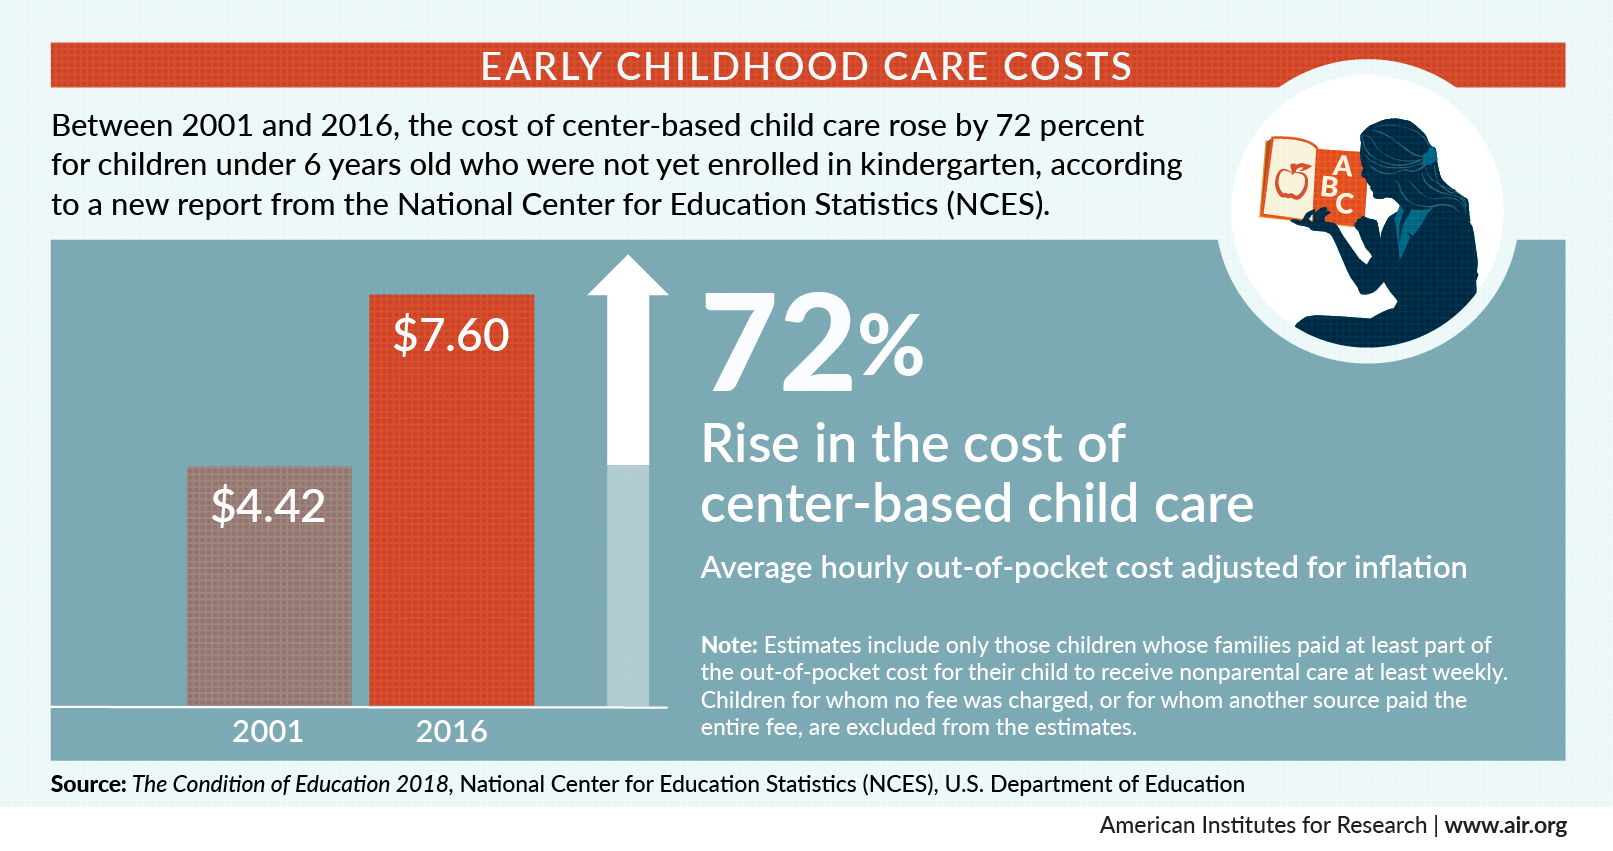 Nces Releases Condition Of Education >> Condition Of Education 2018 Early Childhood Care Costs American